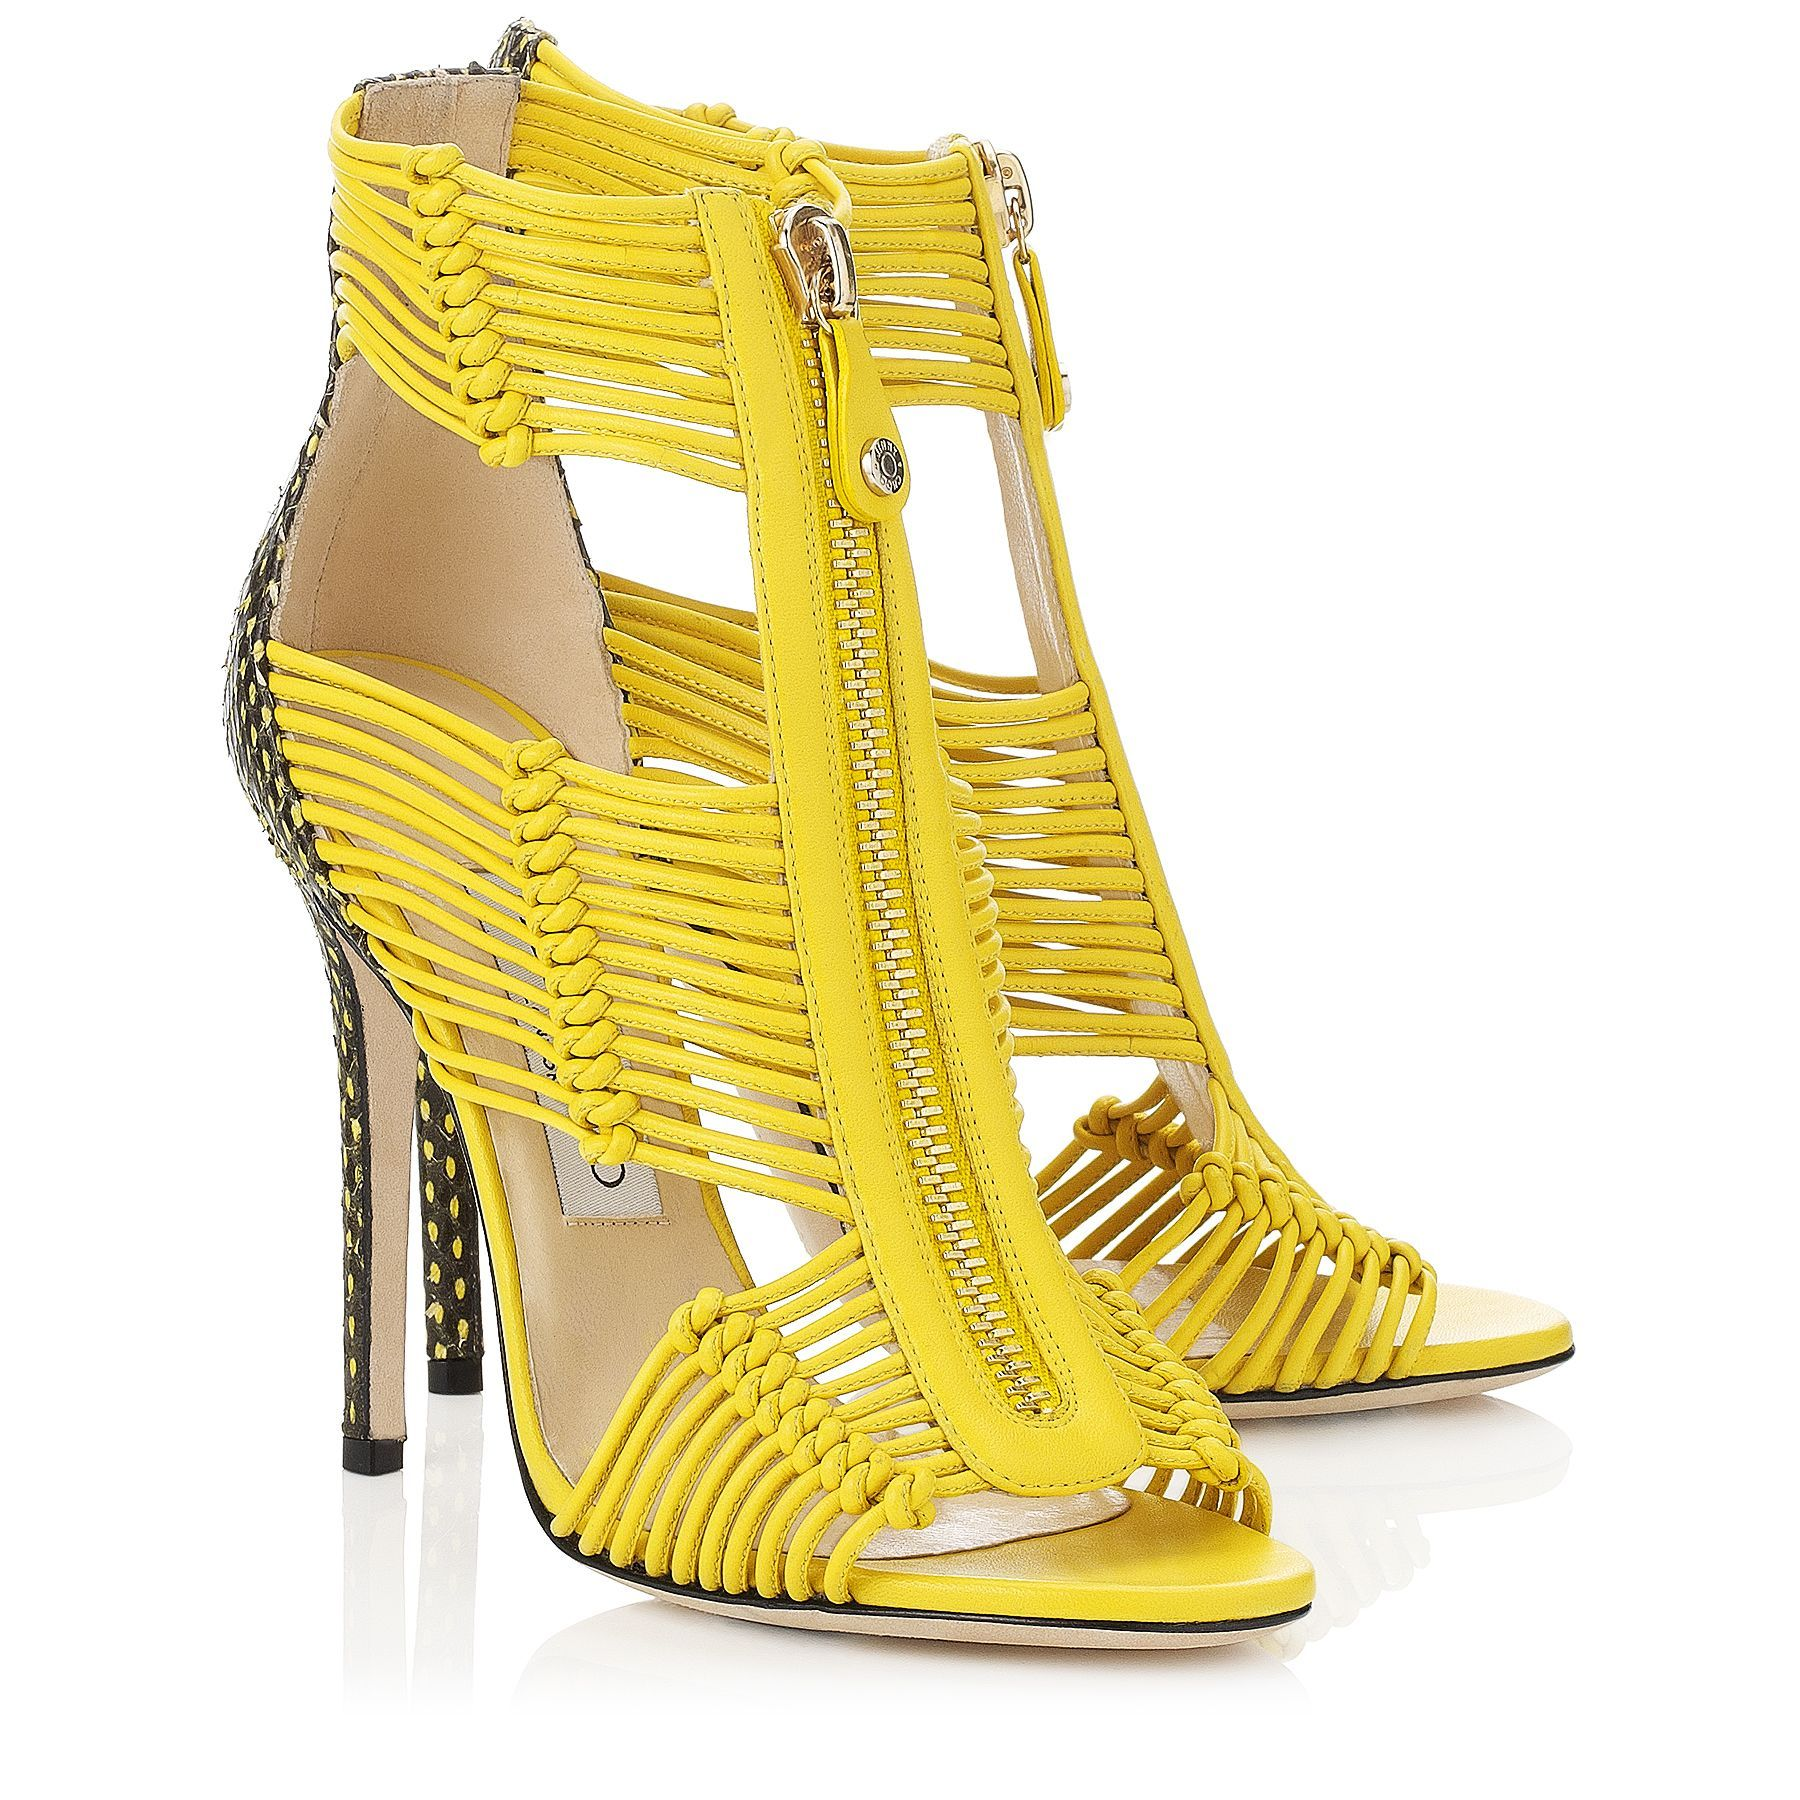 ebbd739d2975 Yellow Nappa and Printed Leather Caged Sandals